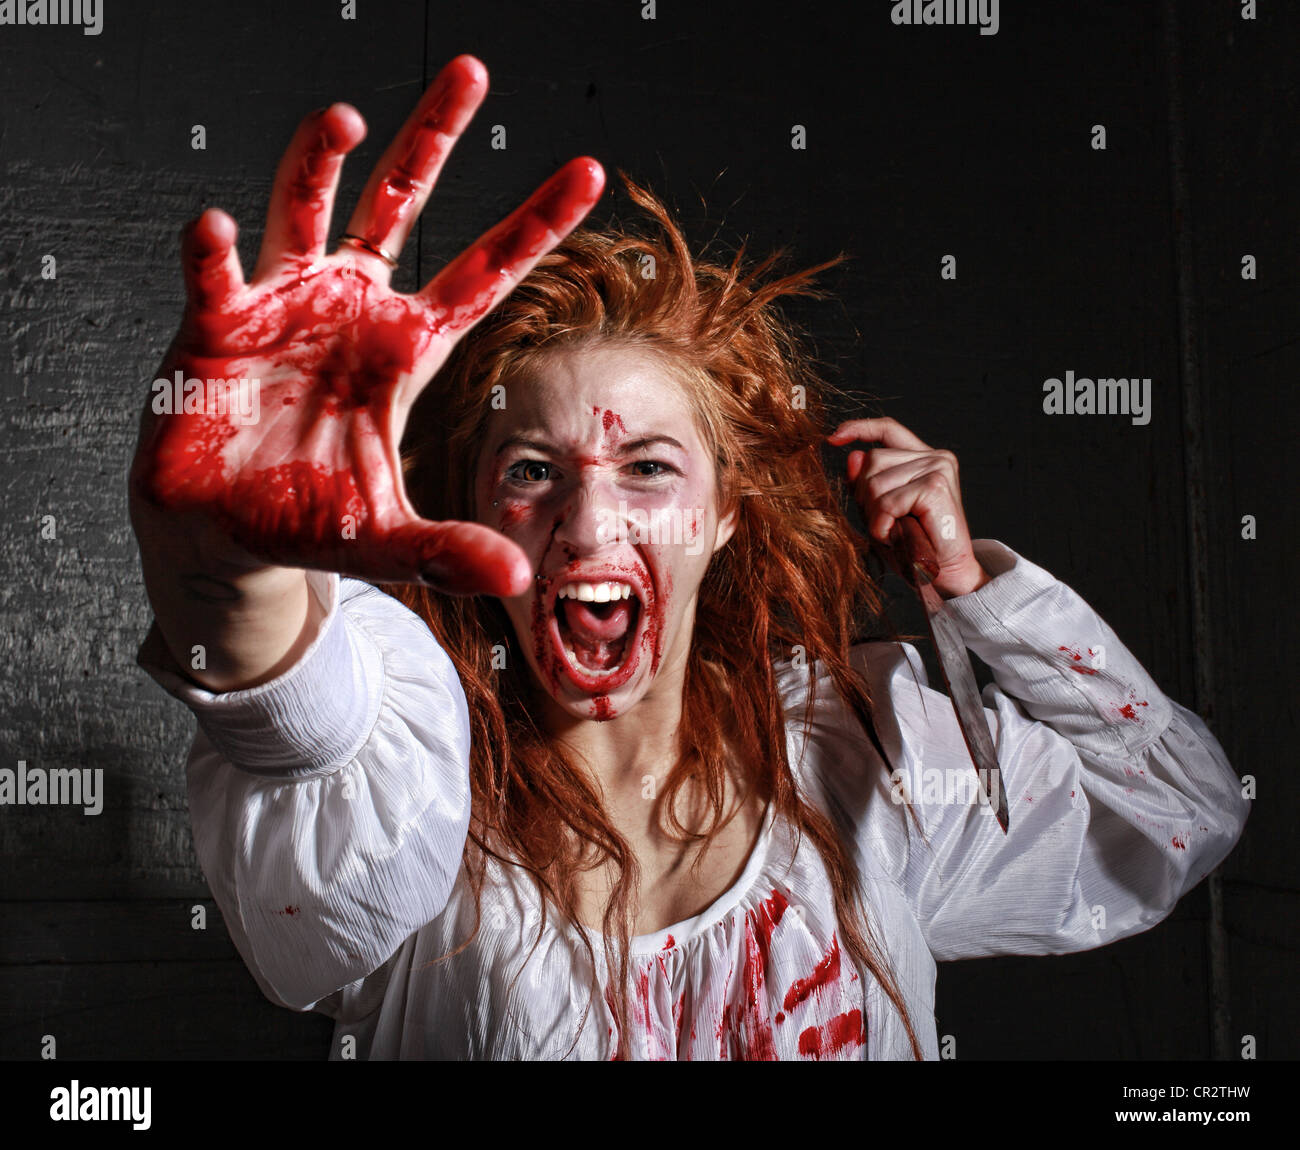 Woman in Horror Situation With Bloody Face - Stock Image